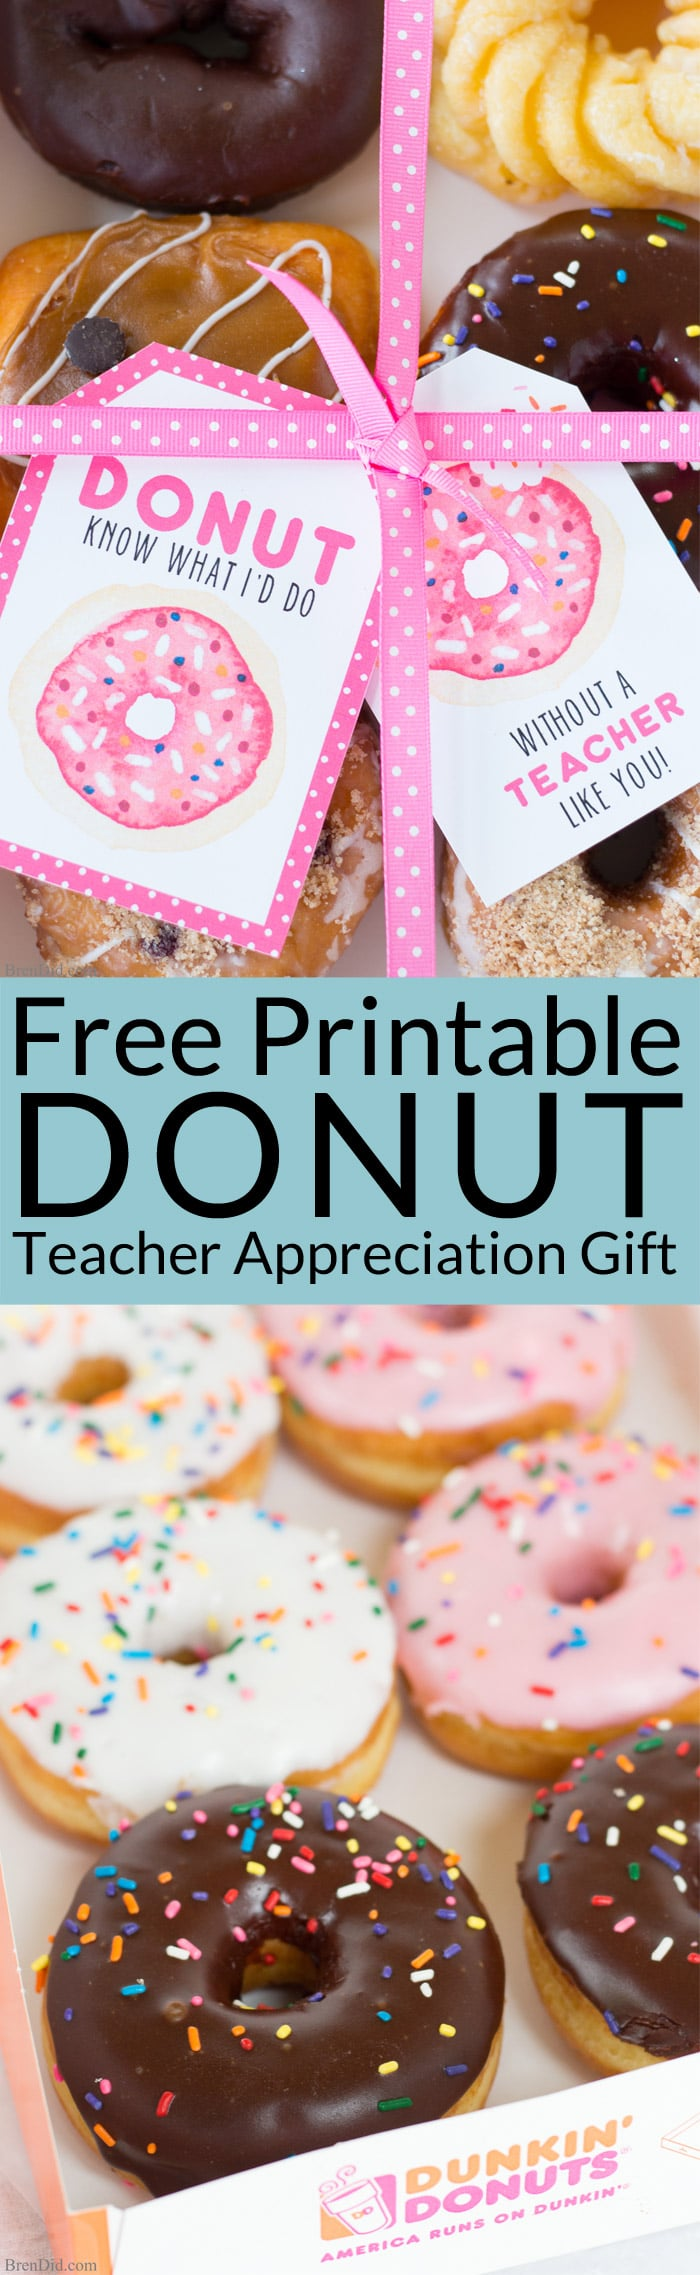 The end of school year is approaching! Tell your teacher thank you with this easy teacher appreciation gift and free printable gift tag featuring fun donut sayings. Great idea for teacher appreciation week or end of year teacher gifts. DIY Teacher Gifts, Simple Teacher Appreciation Gift, Teacher Appreciation Gift Ideas.